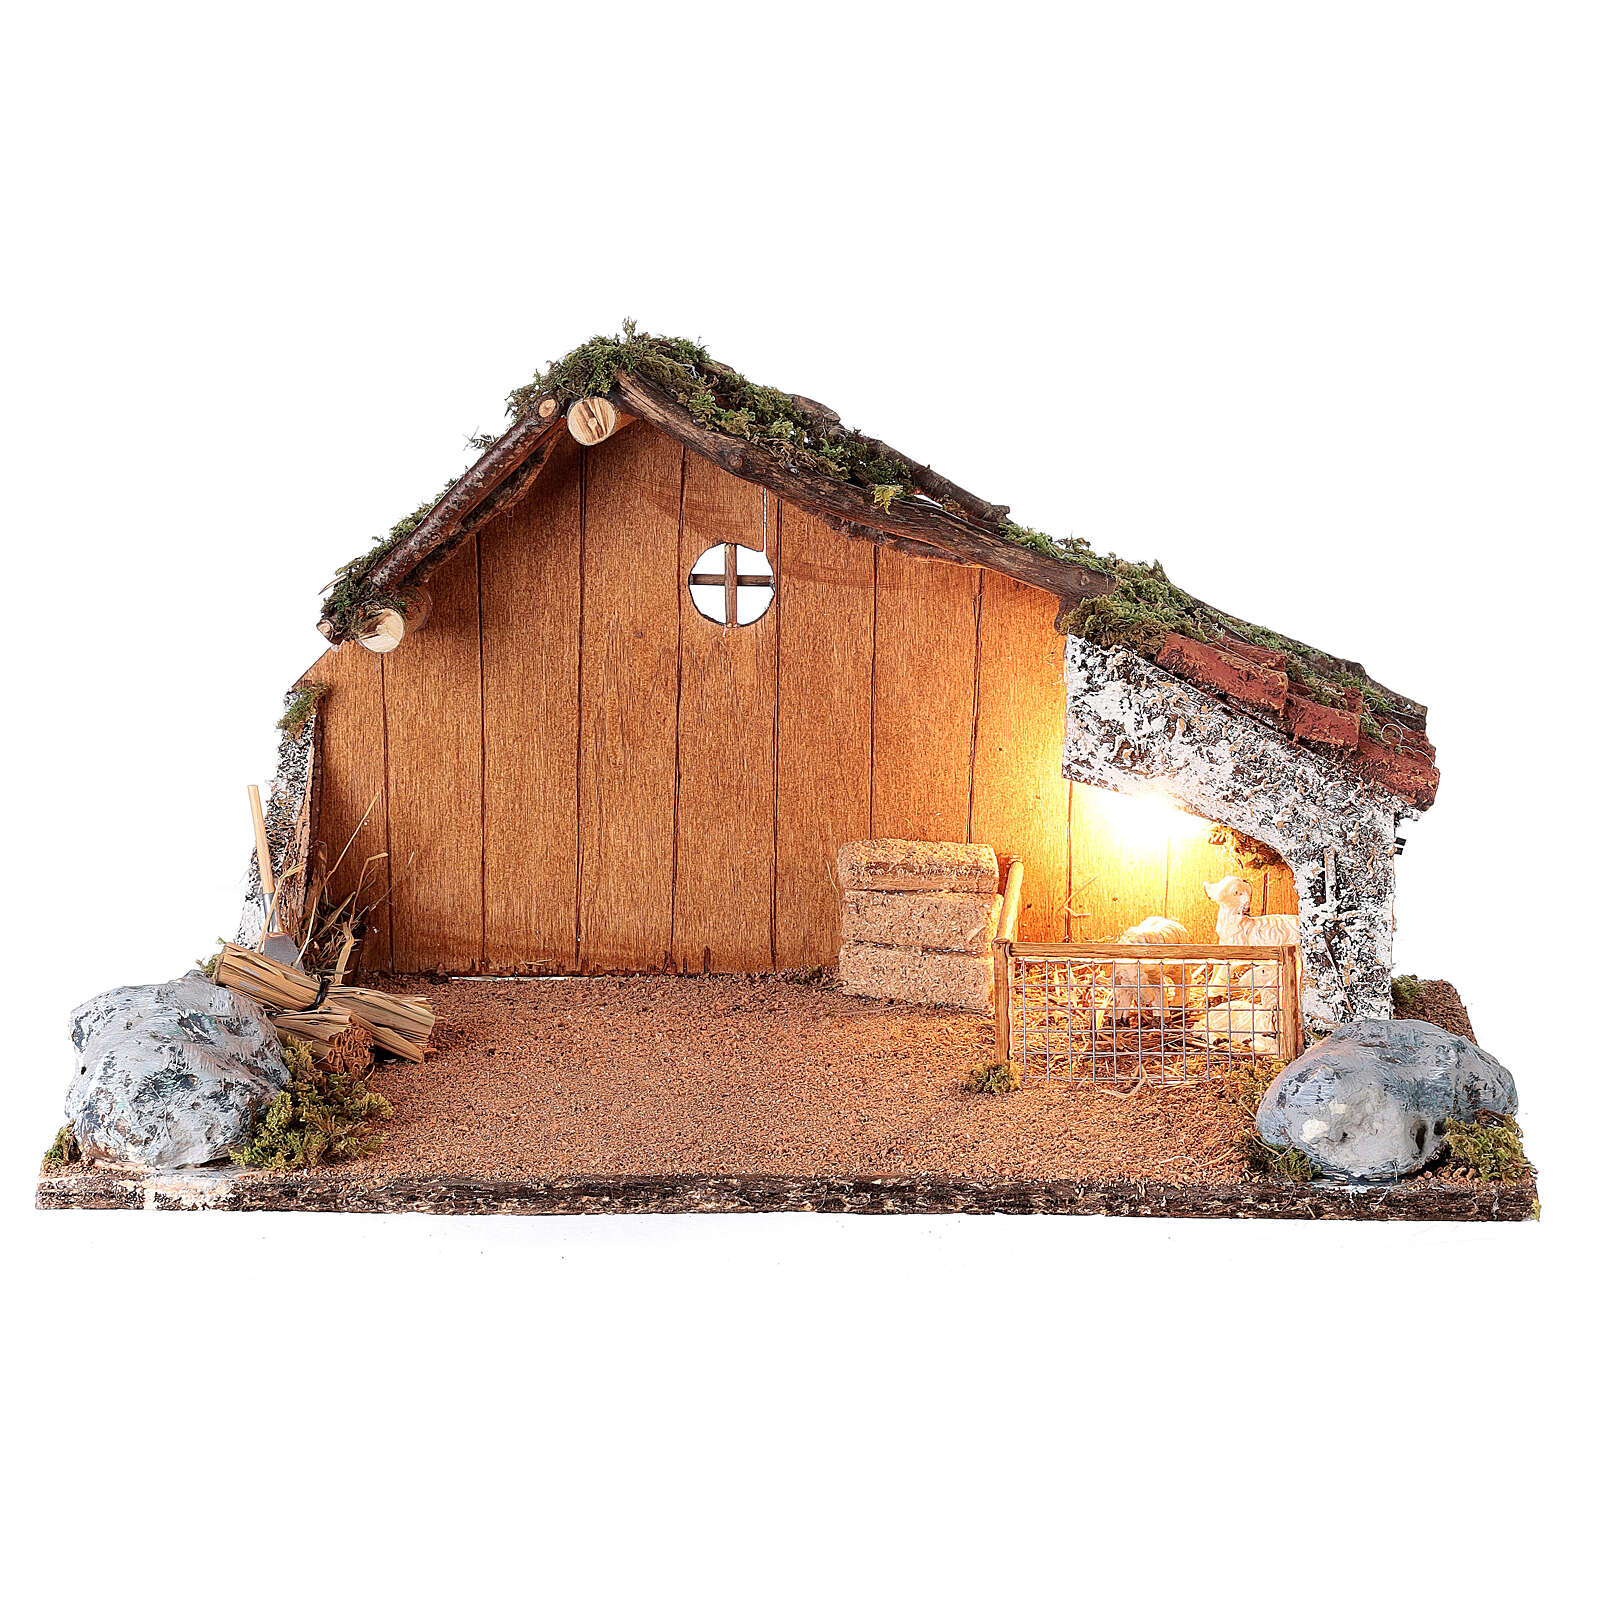 Stable with sheep enclosure, Neapolitan nativity scene 20x40x20 for statues 8-10 cm 4